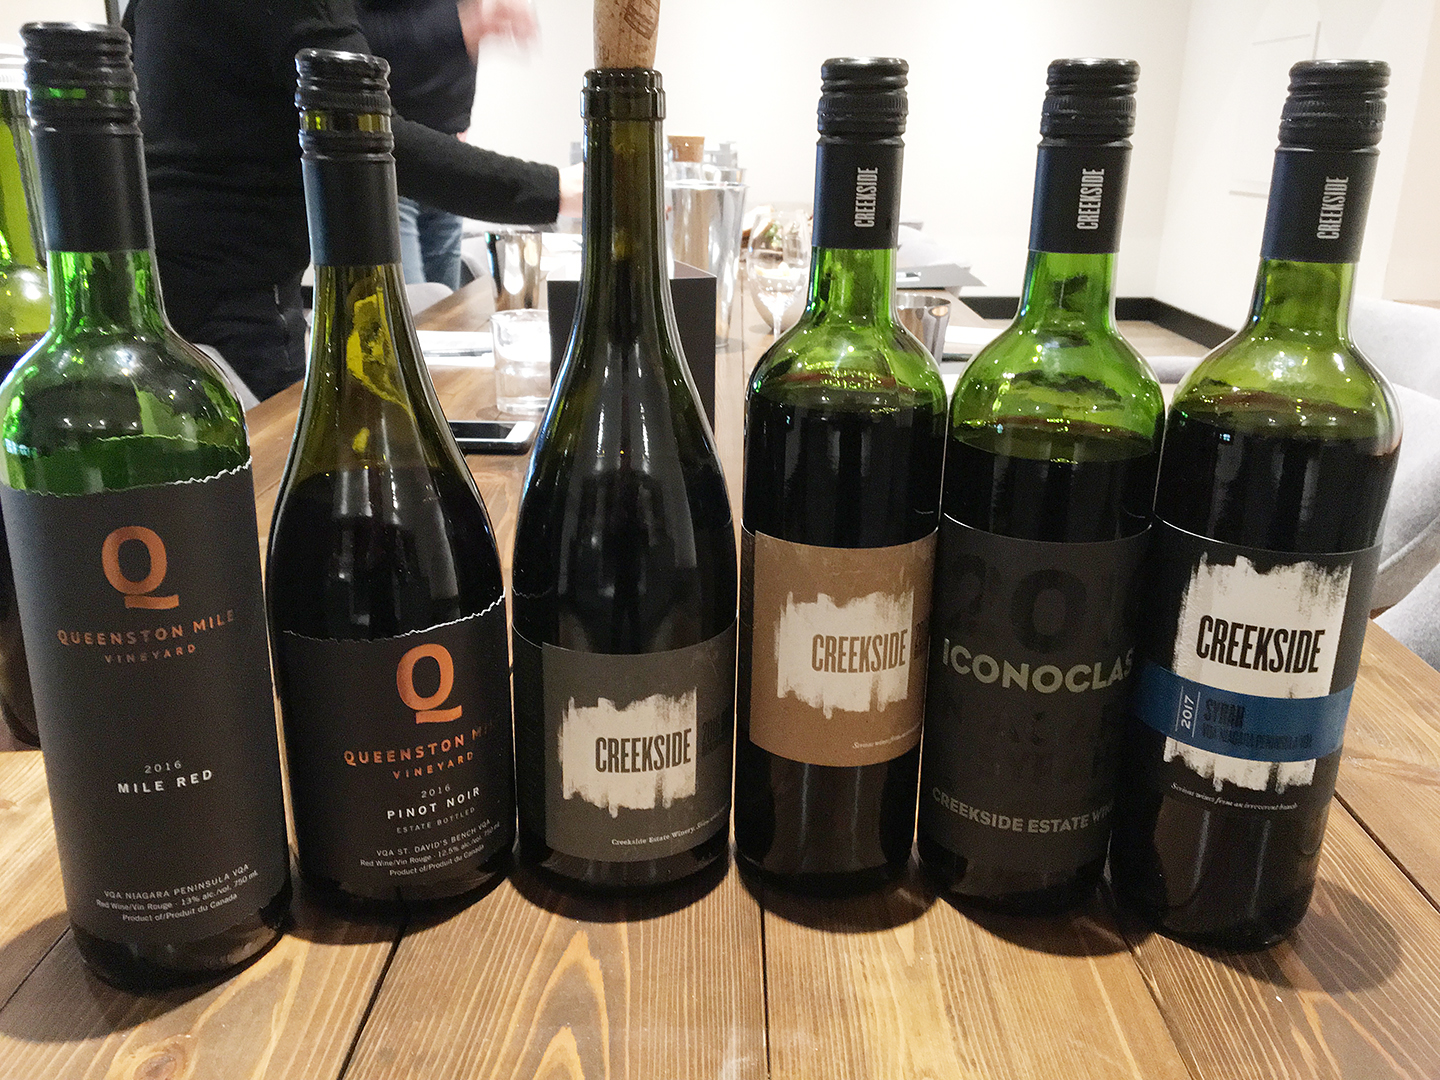 the six bottles of red wine that are reviewed